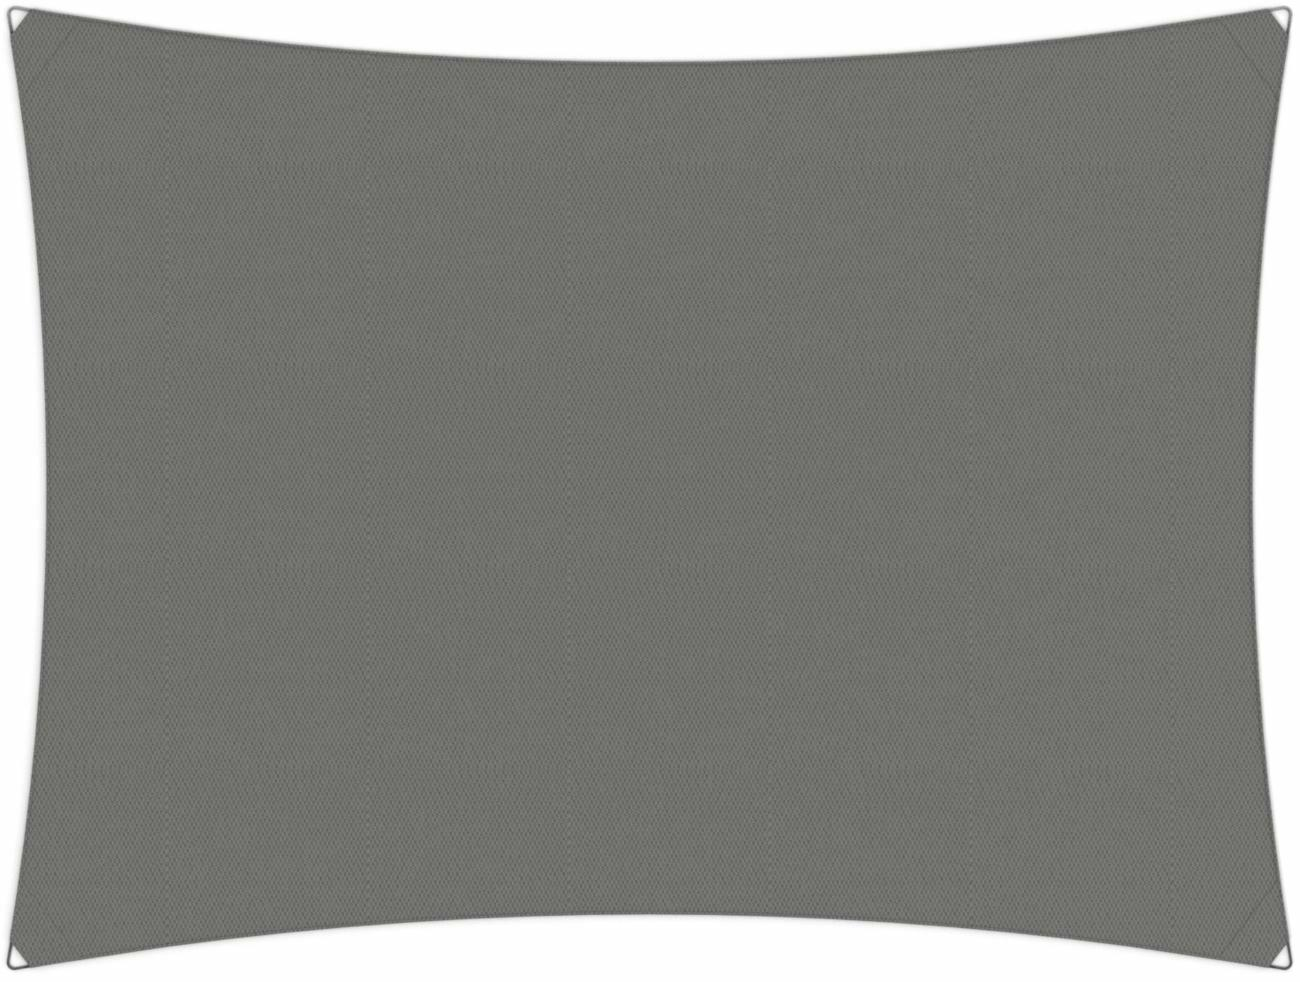 Ingenua shade sail Rectangle 4 x 3 m, for outdoor use. Colour of the fabric shade sail Grey.